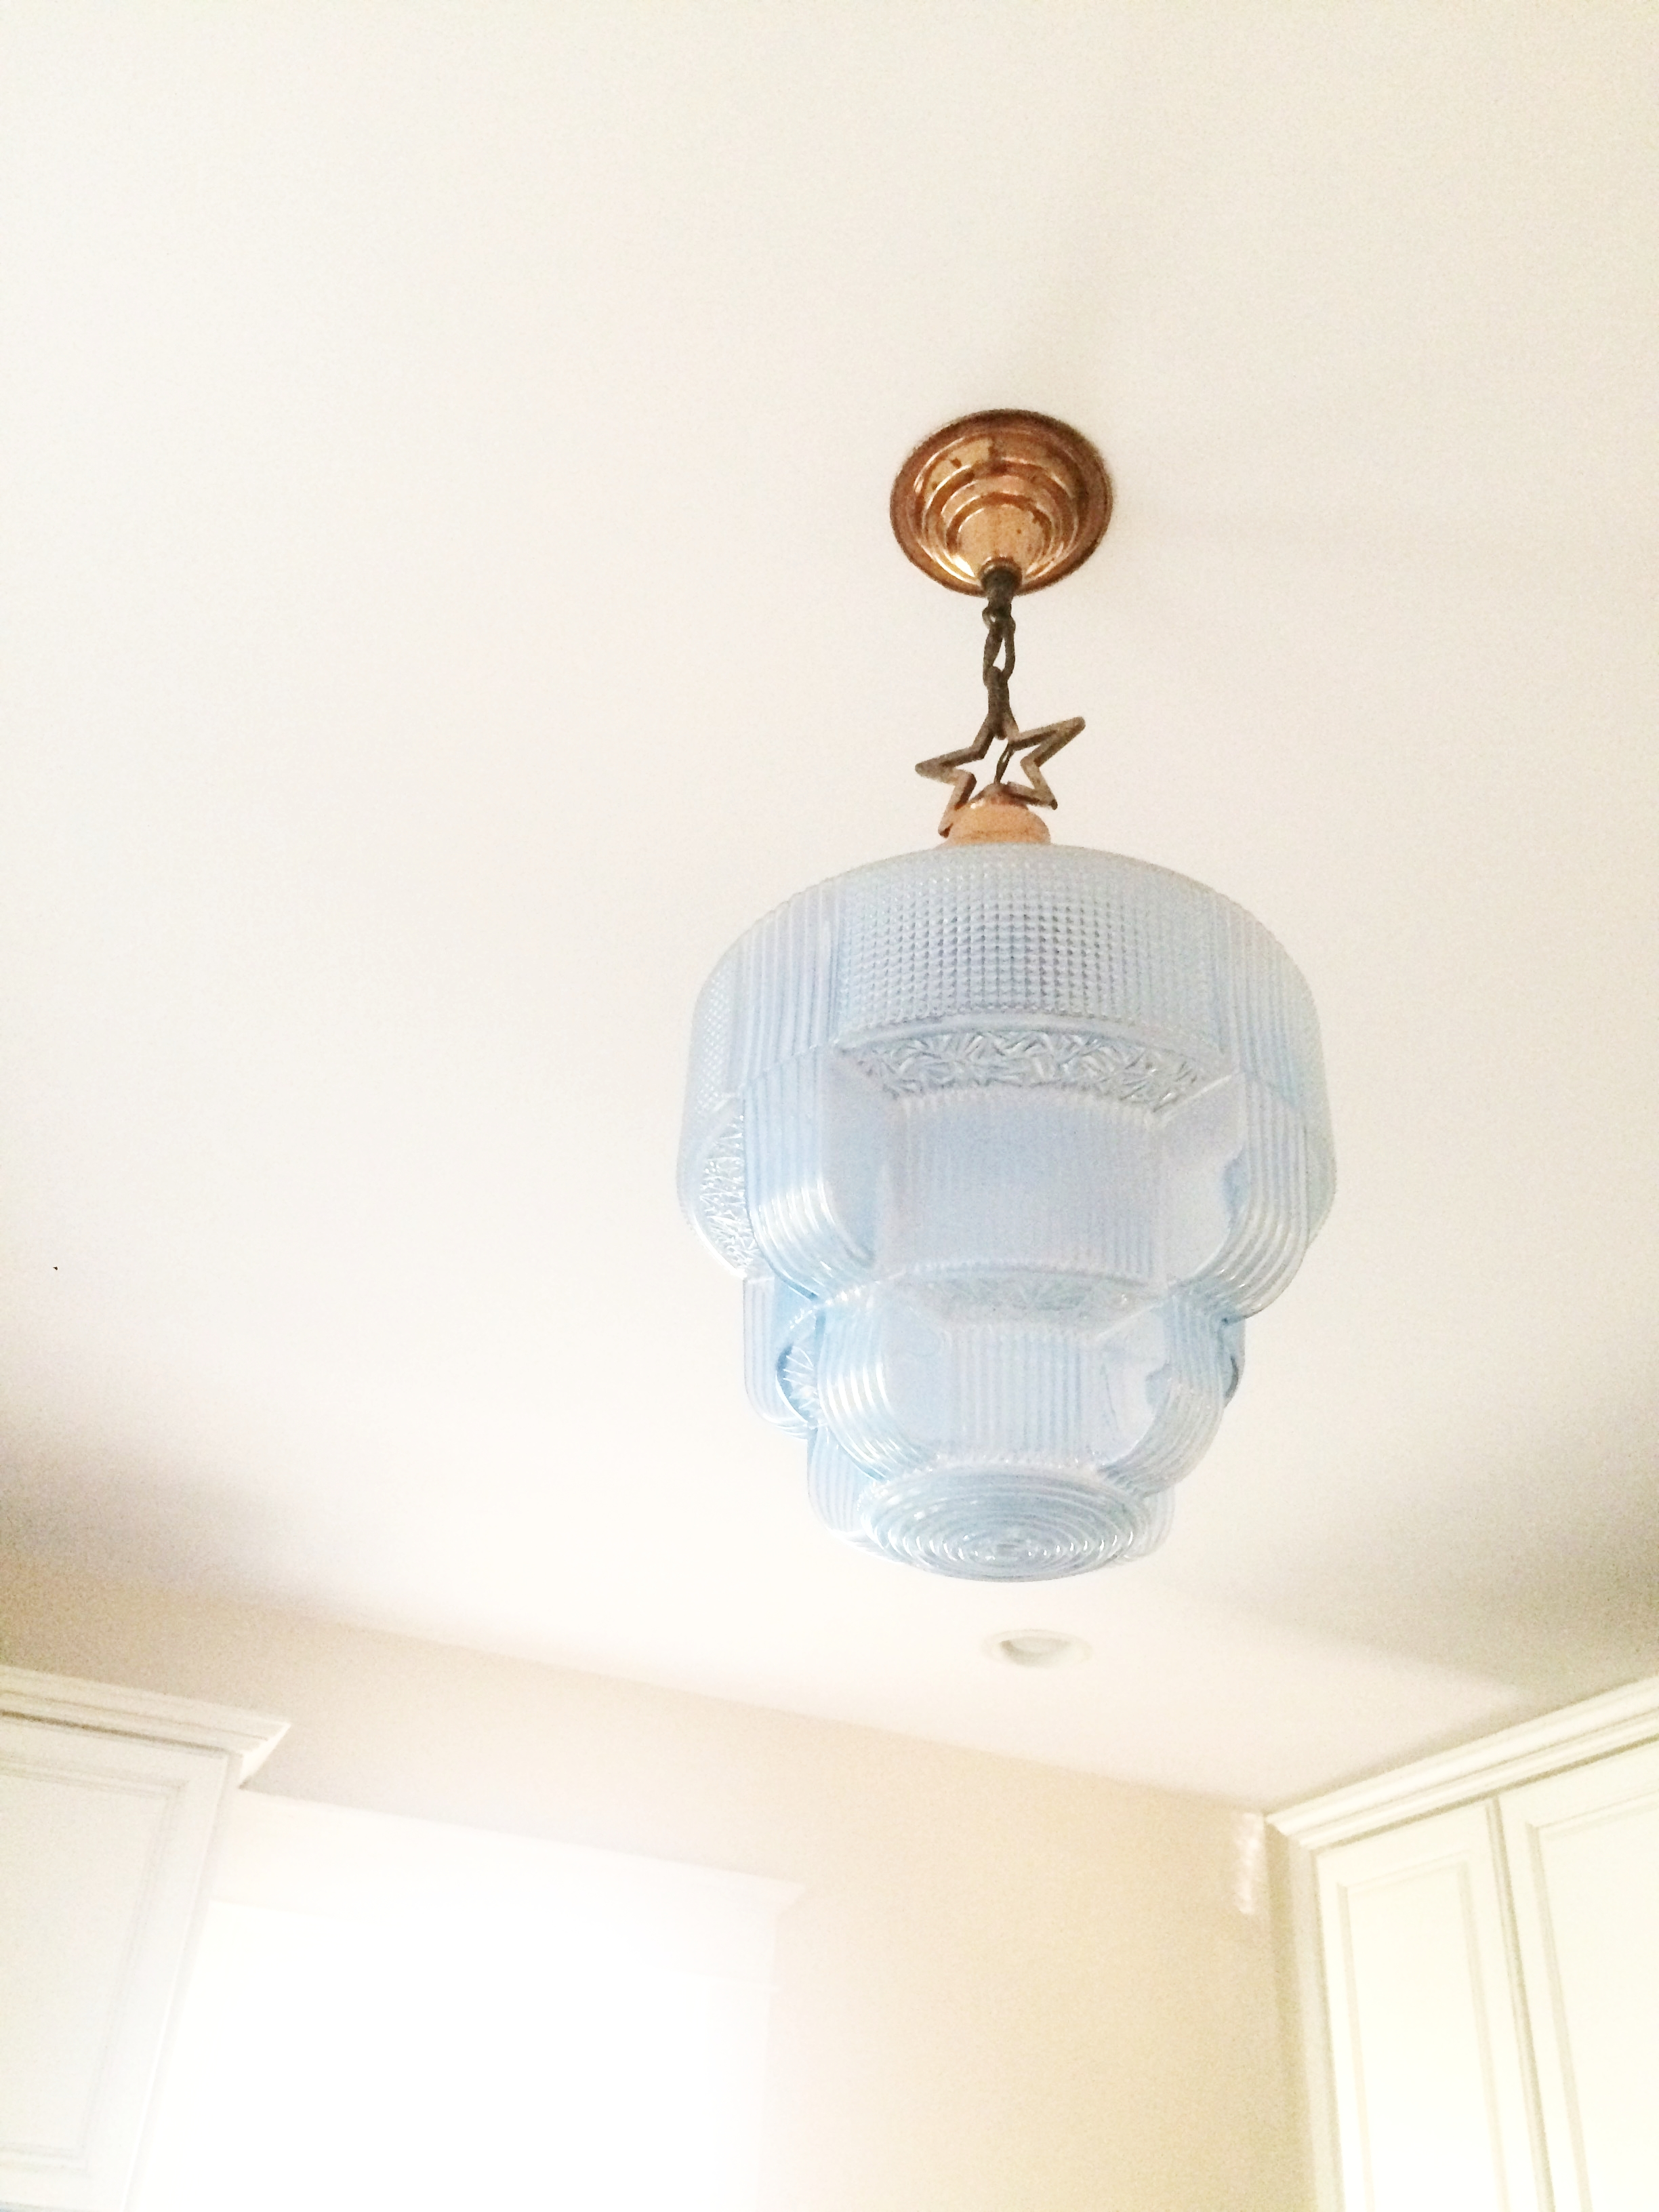 This vintage store lamp was one of Theresa's first major home purchases. It's traveled with her to each new home since her 20s.